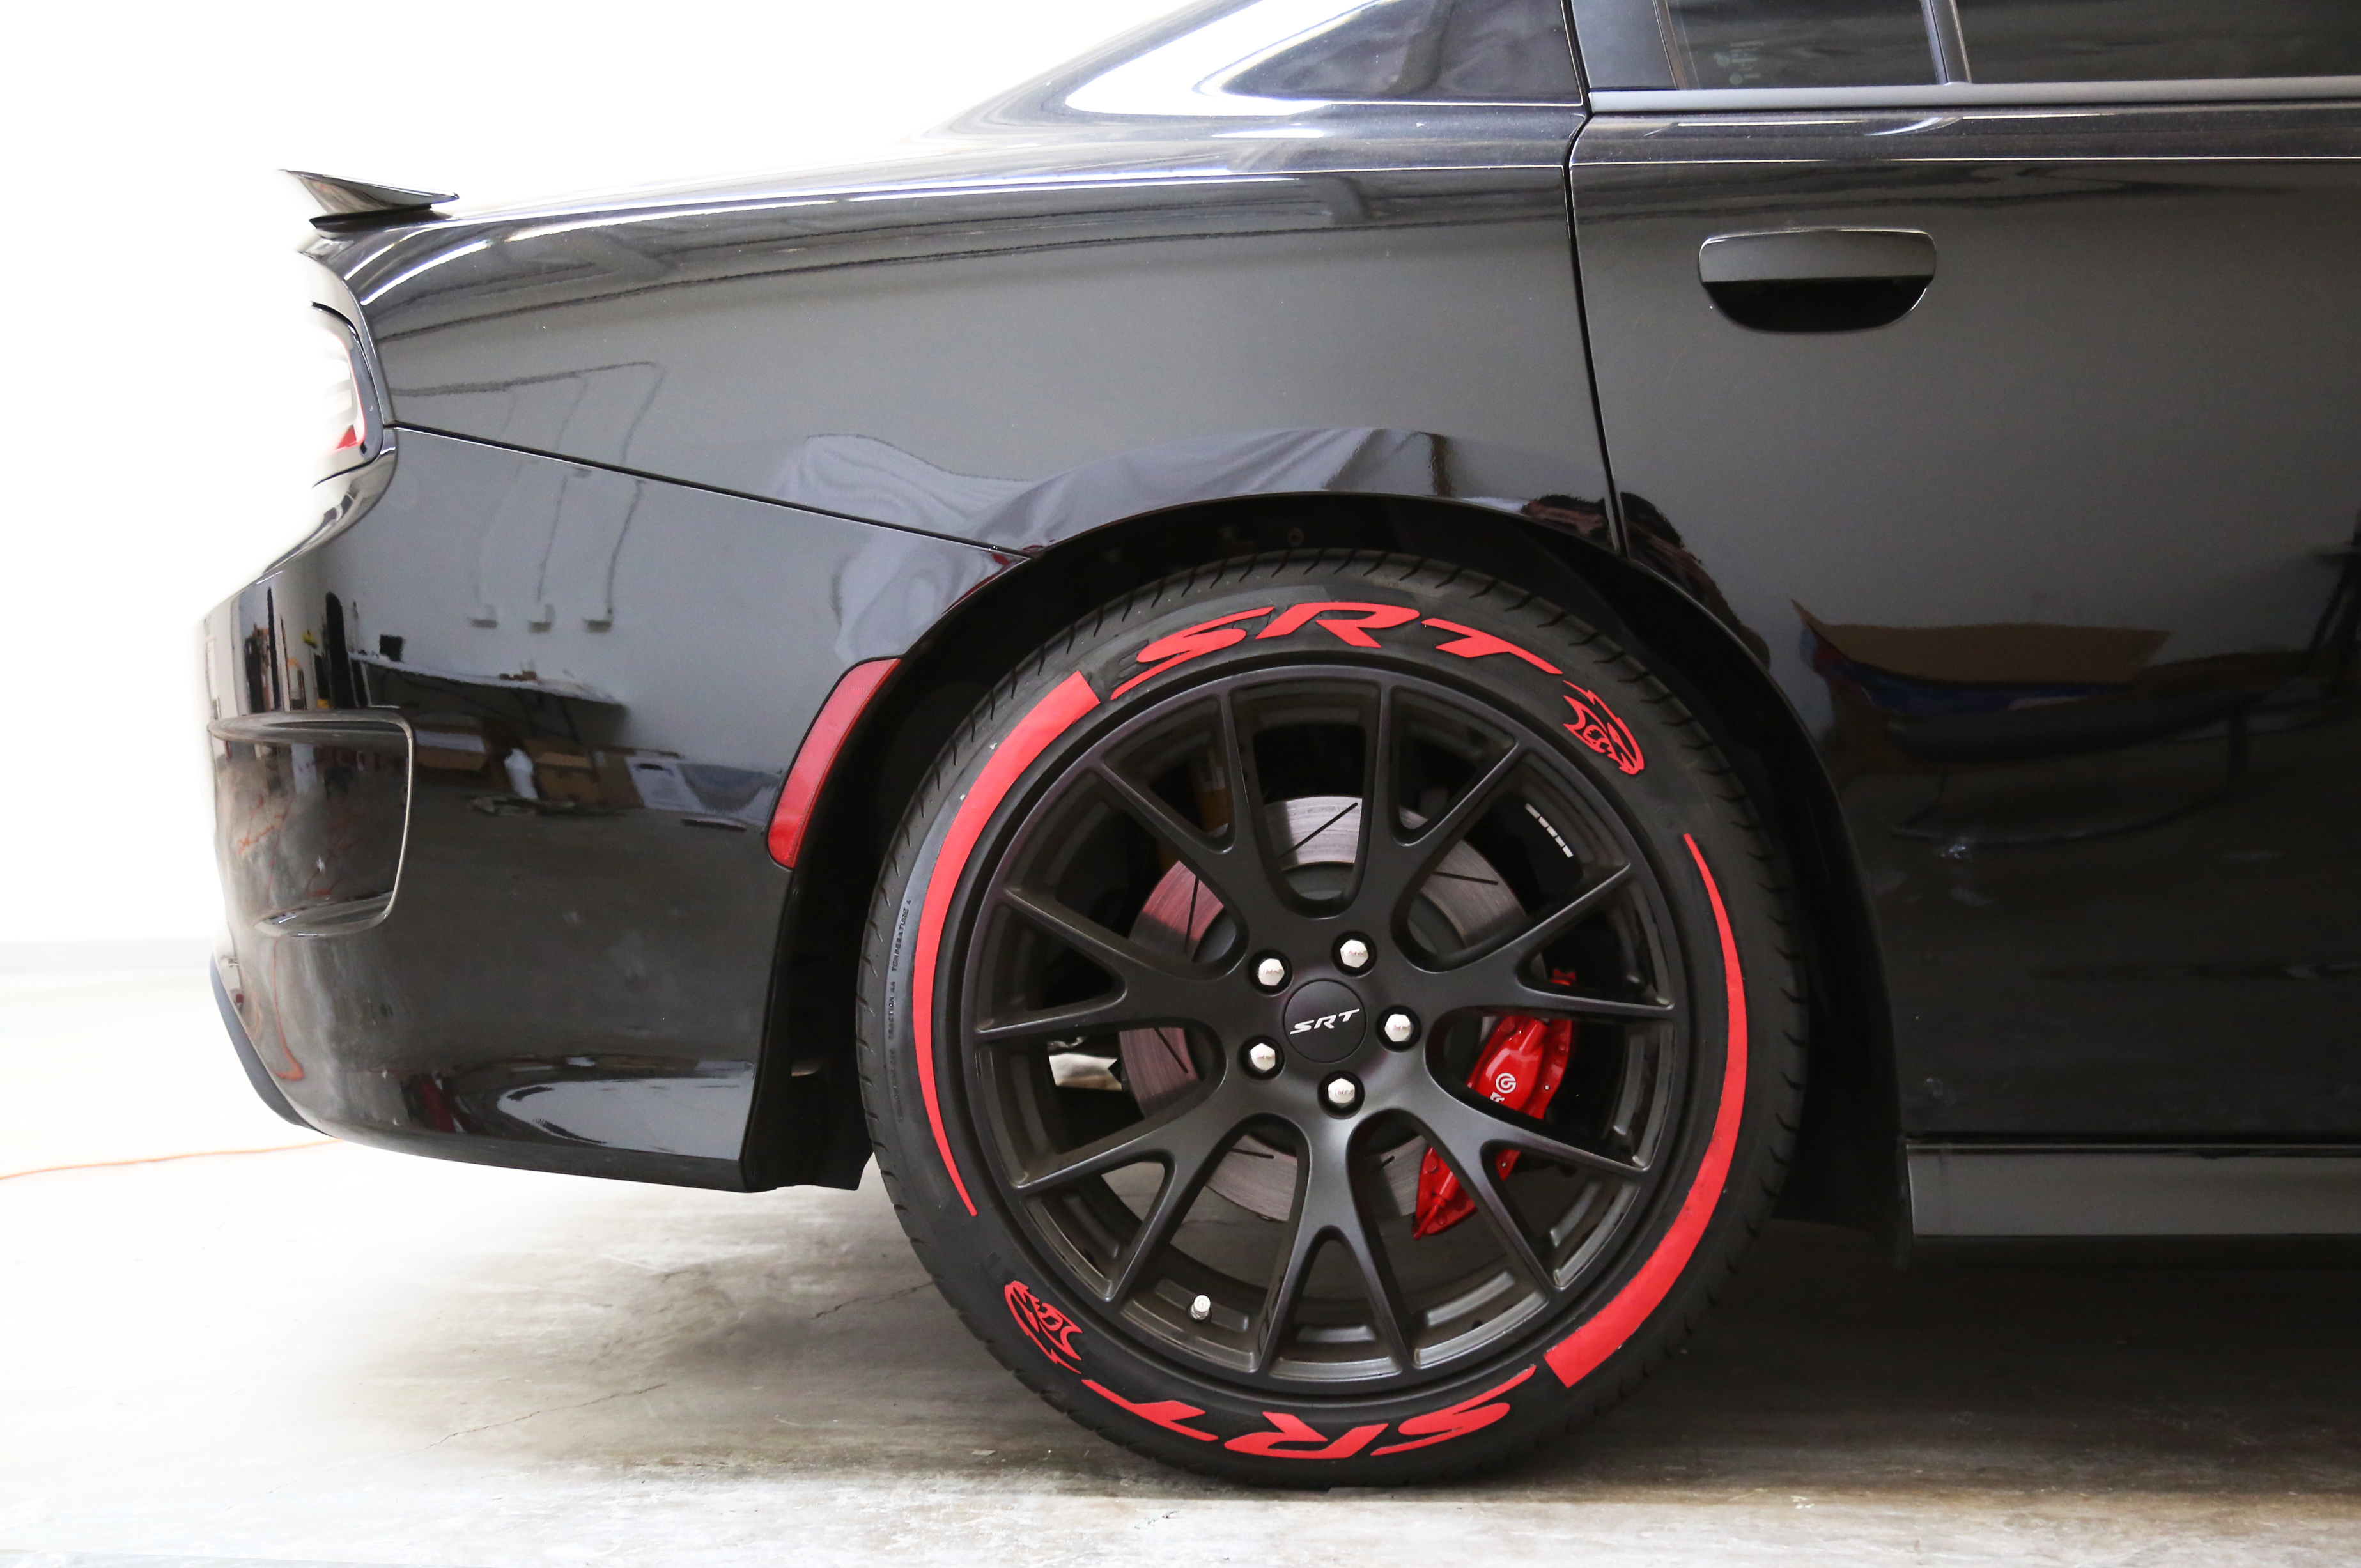 Srt Camaro Hellcat Srt Hell Cat With Red Tire Stickers